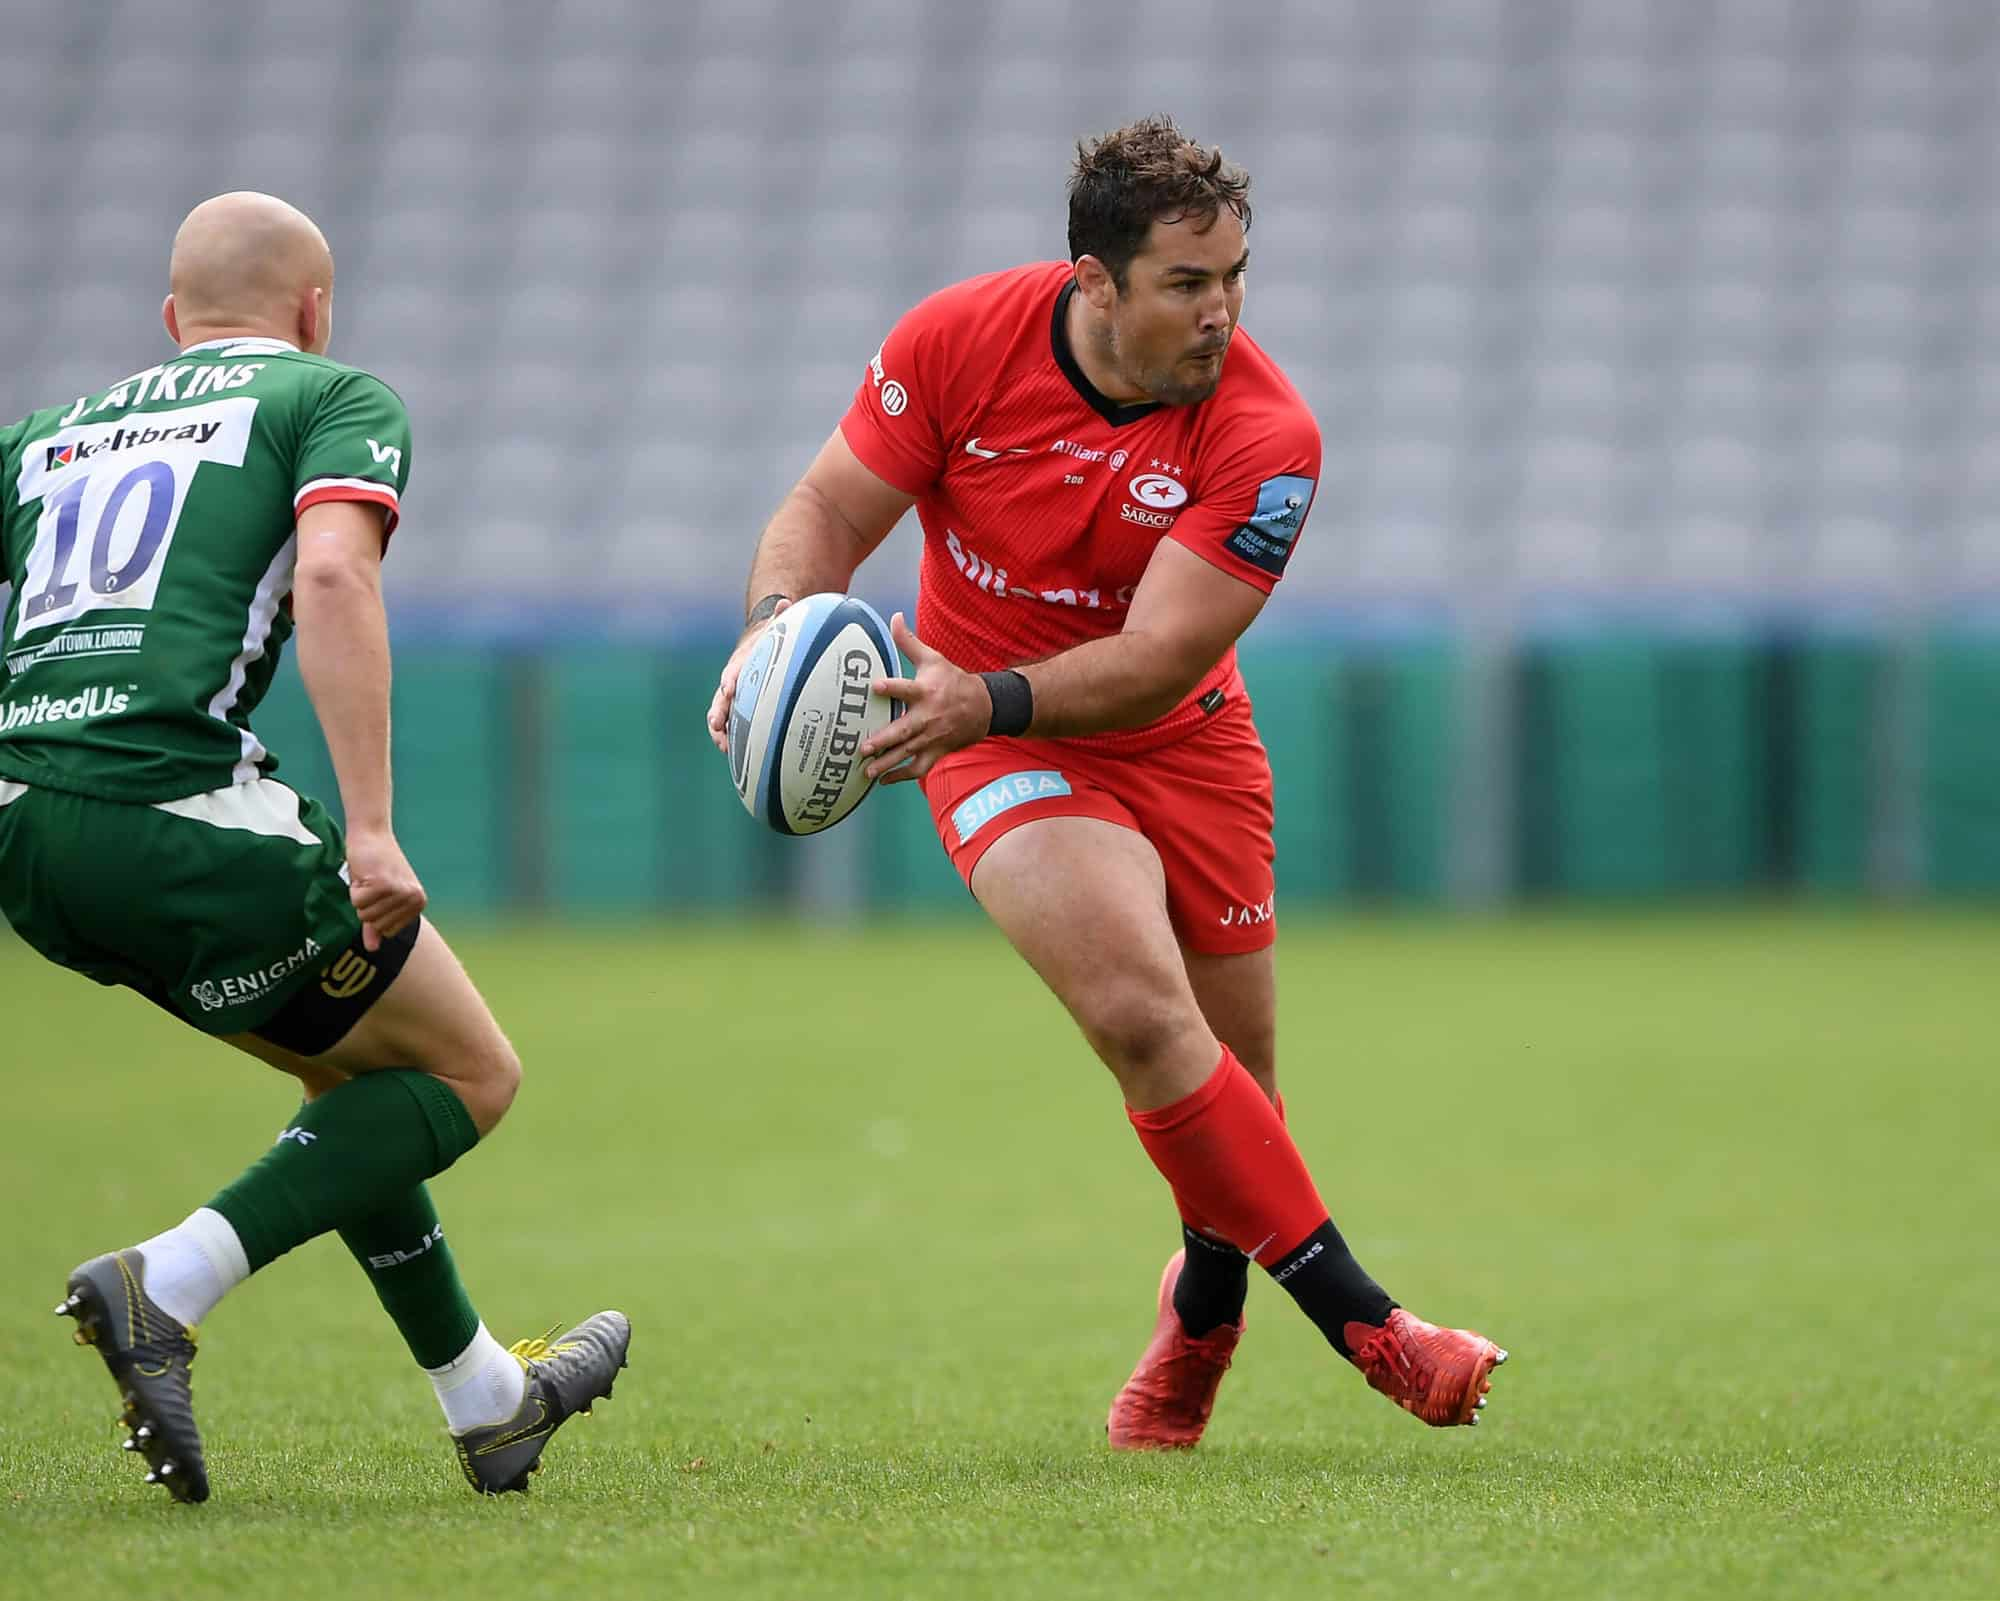 London Irish v Saracens - Gallagher Premiership Rugby